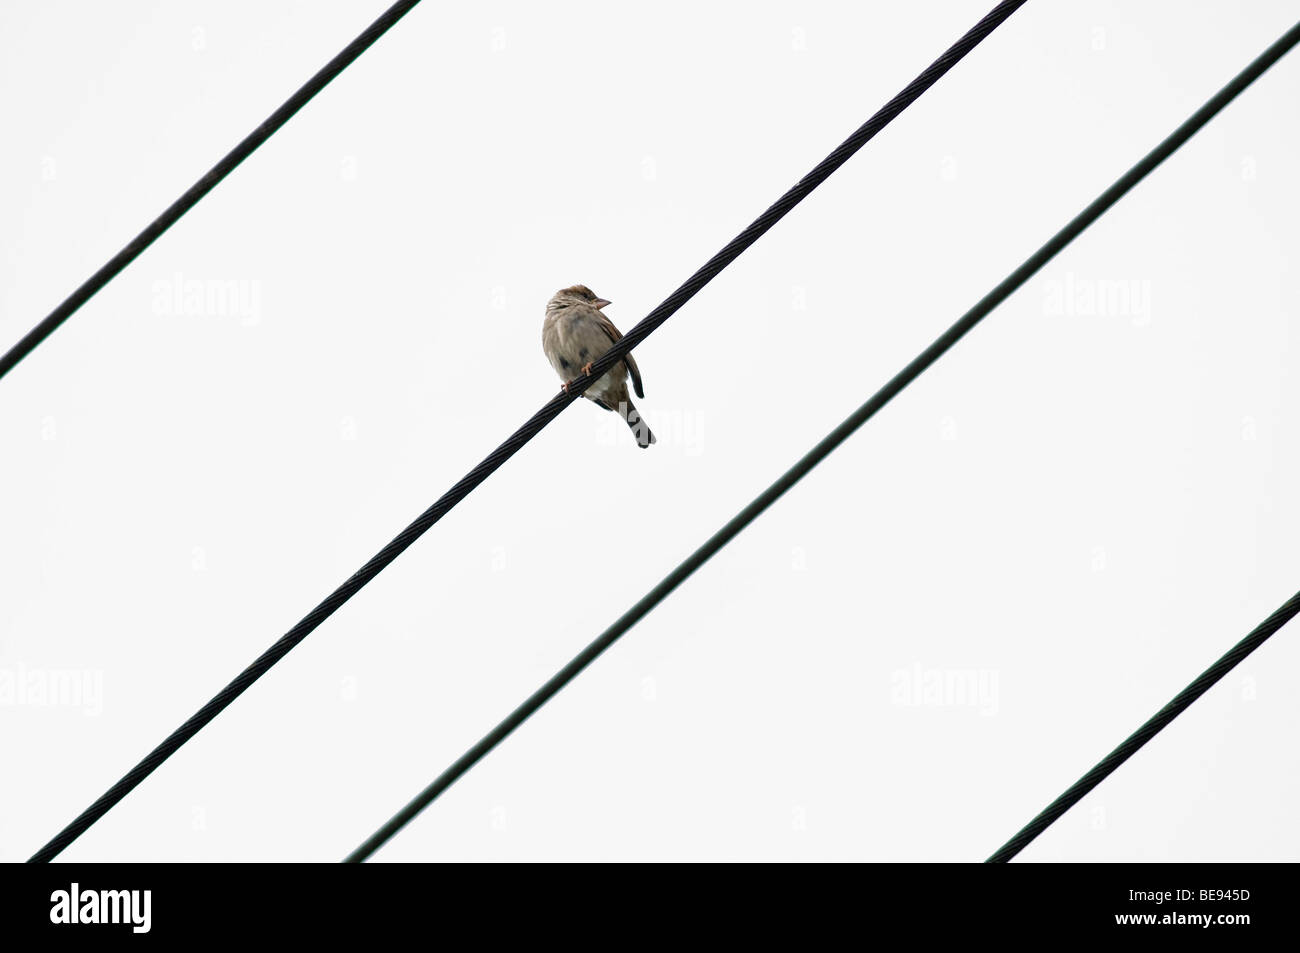 House Sparrow (Passer domesticus) on a power line with 4 lines - Stock Image